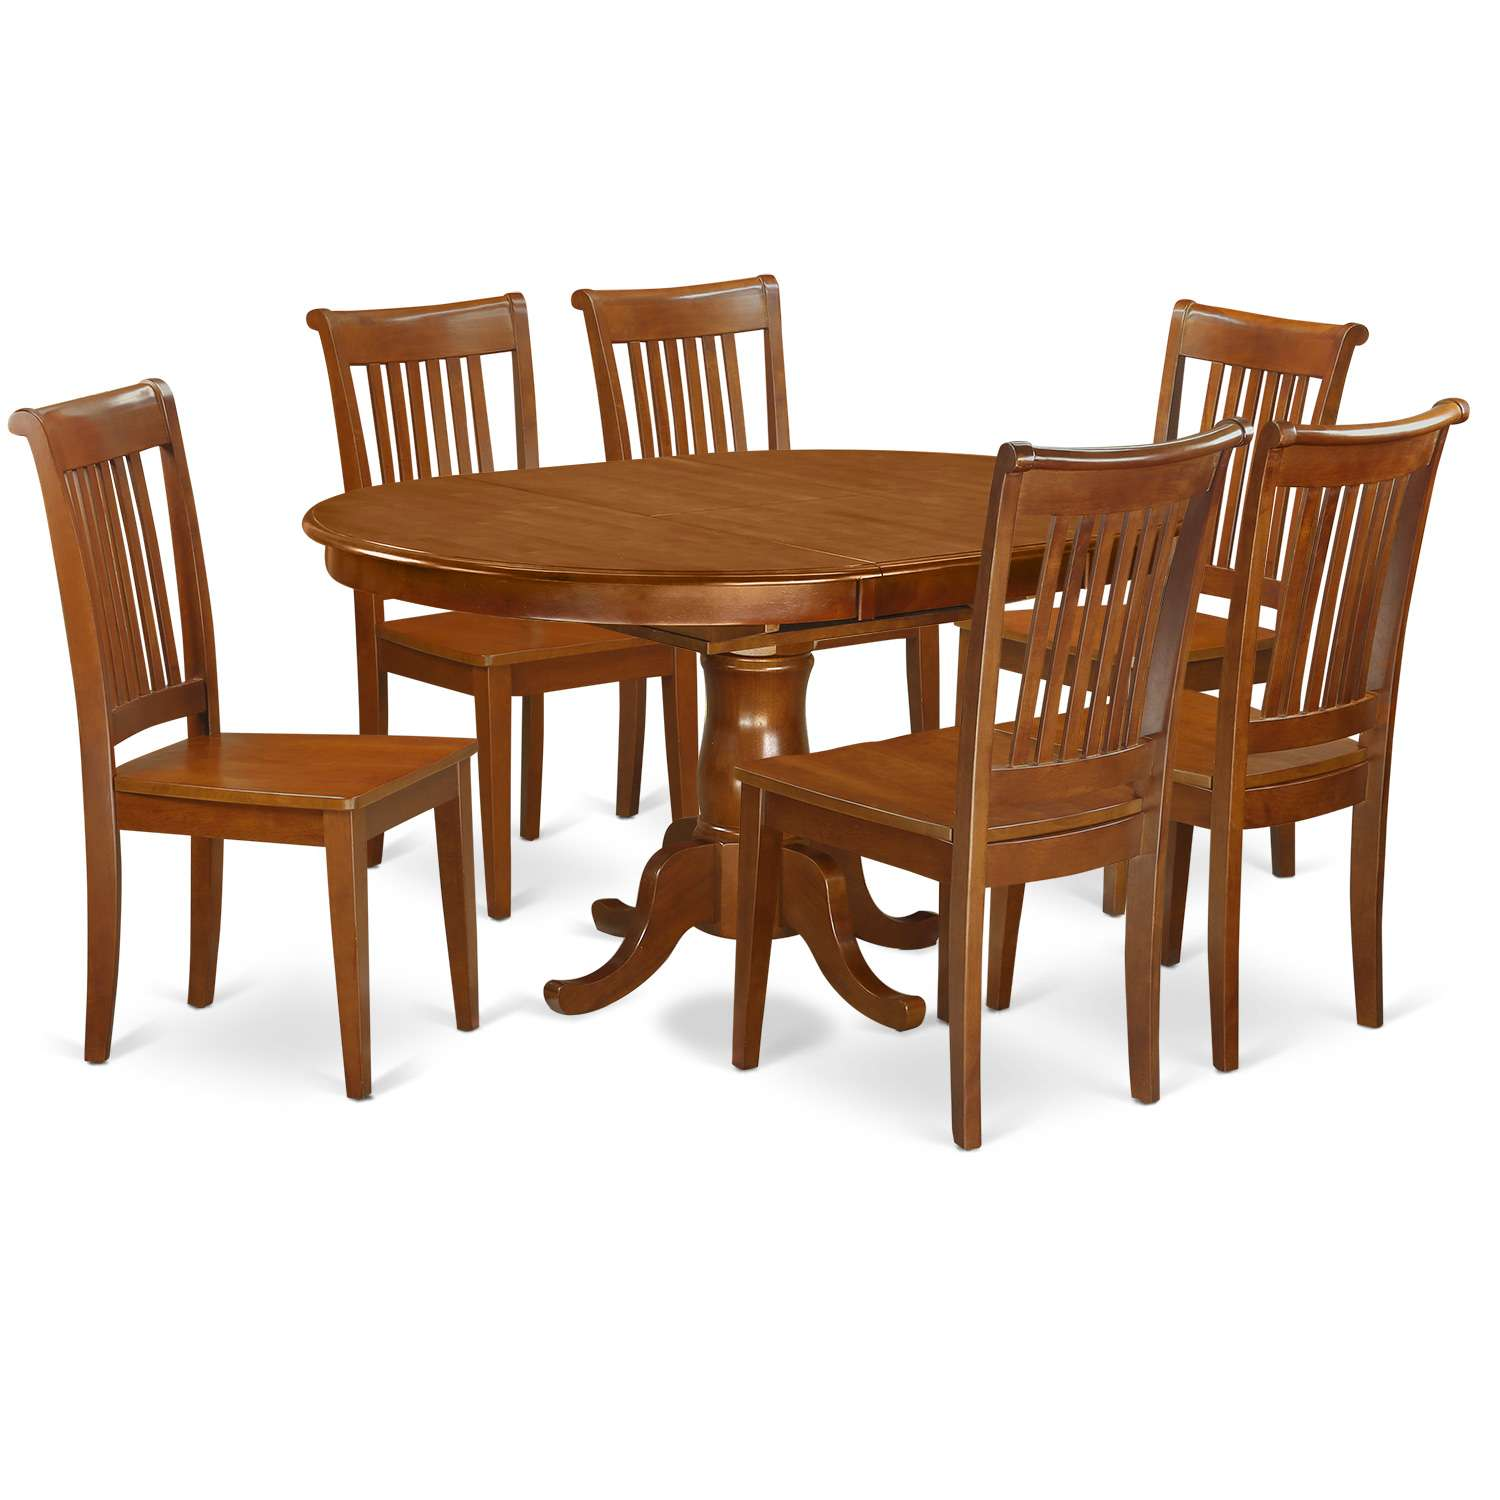 Strange East West Furniture Port7 Sbr W Gmtry Best Dining Table And Chair Ideas Images Gmtryco